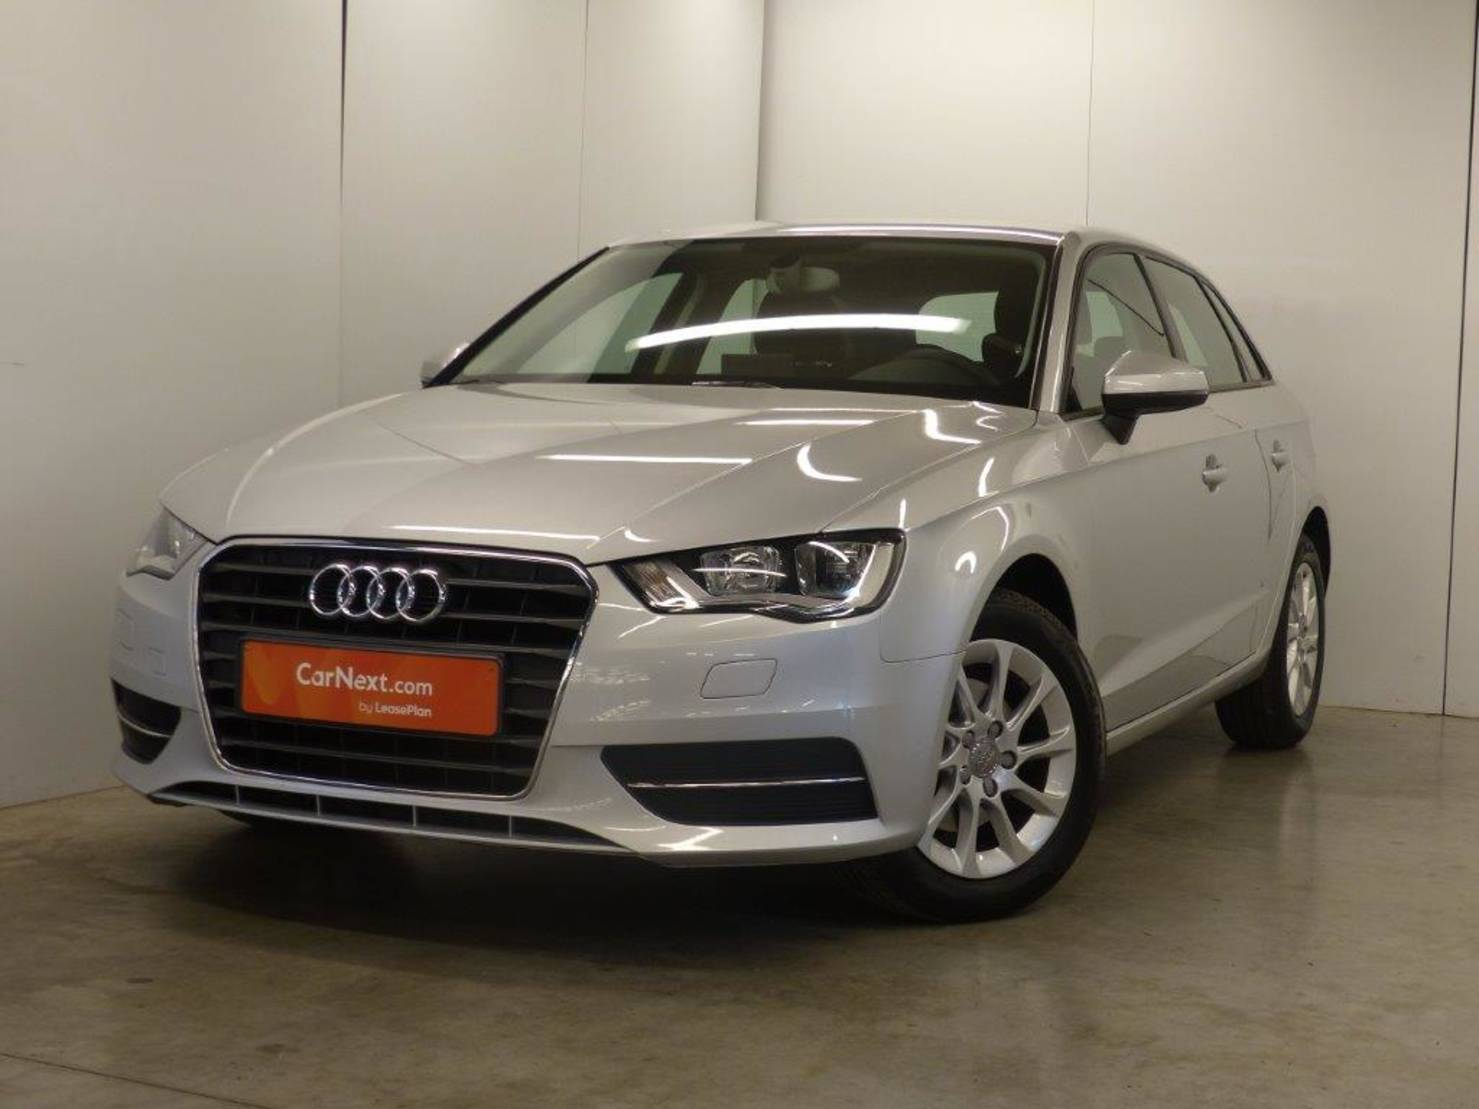 Audi A3 1.6 TDi Attraction S&S GPS USB MP3 PDC BT... detail1